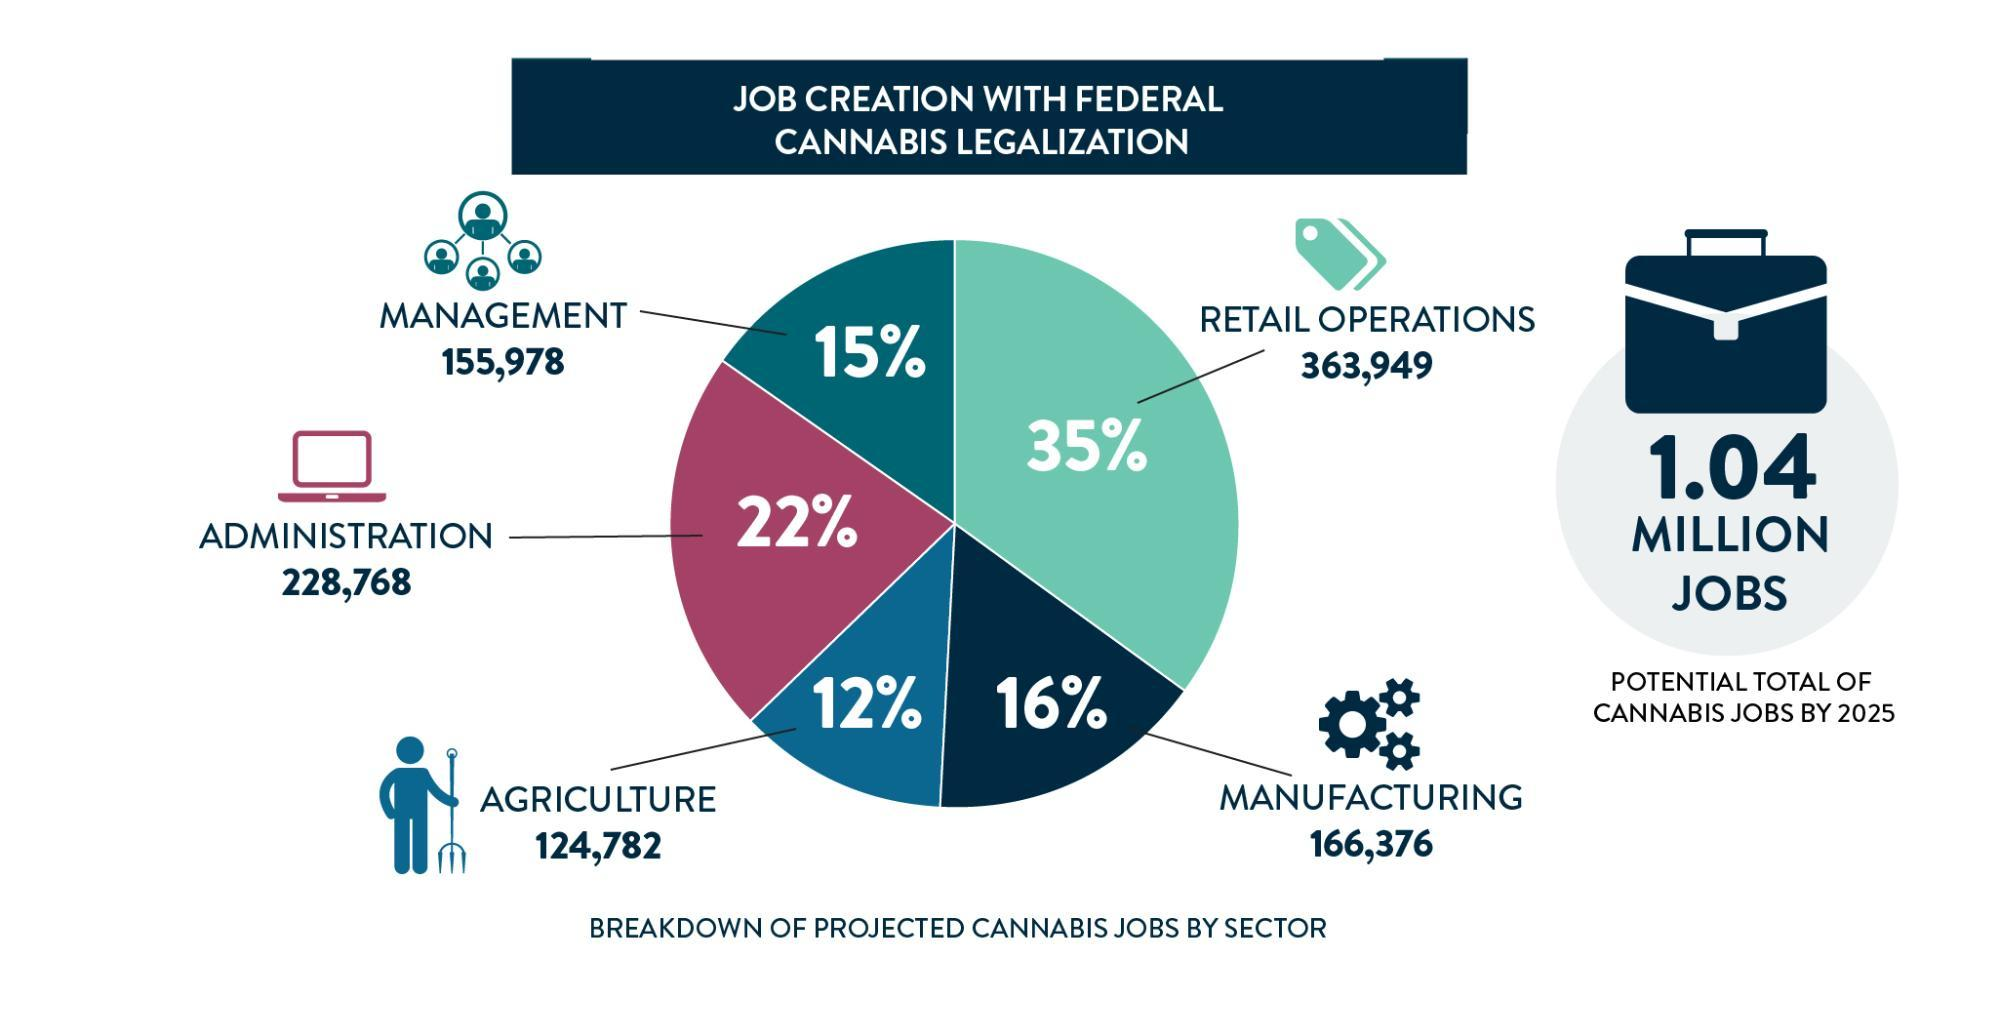 predicted job creation with federal cannabis legalization